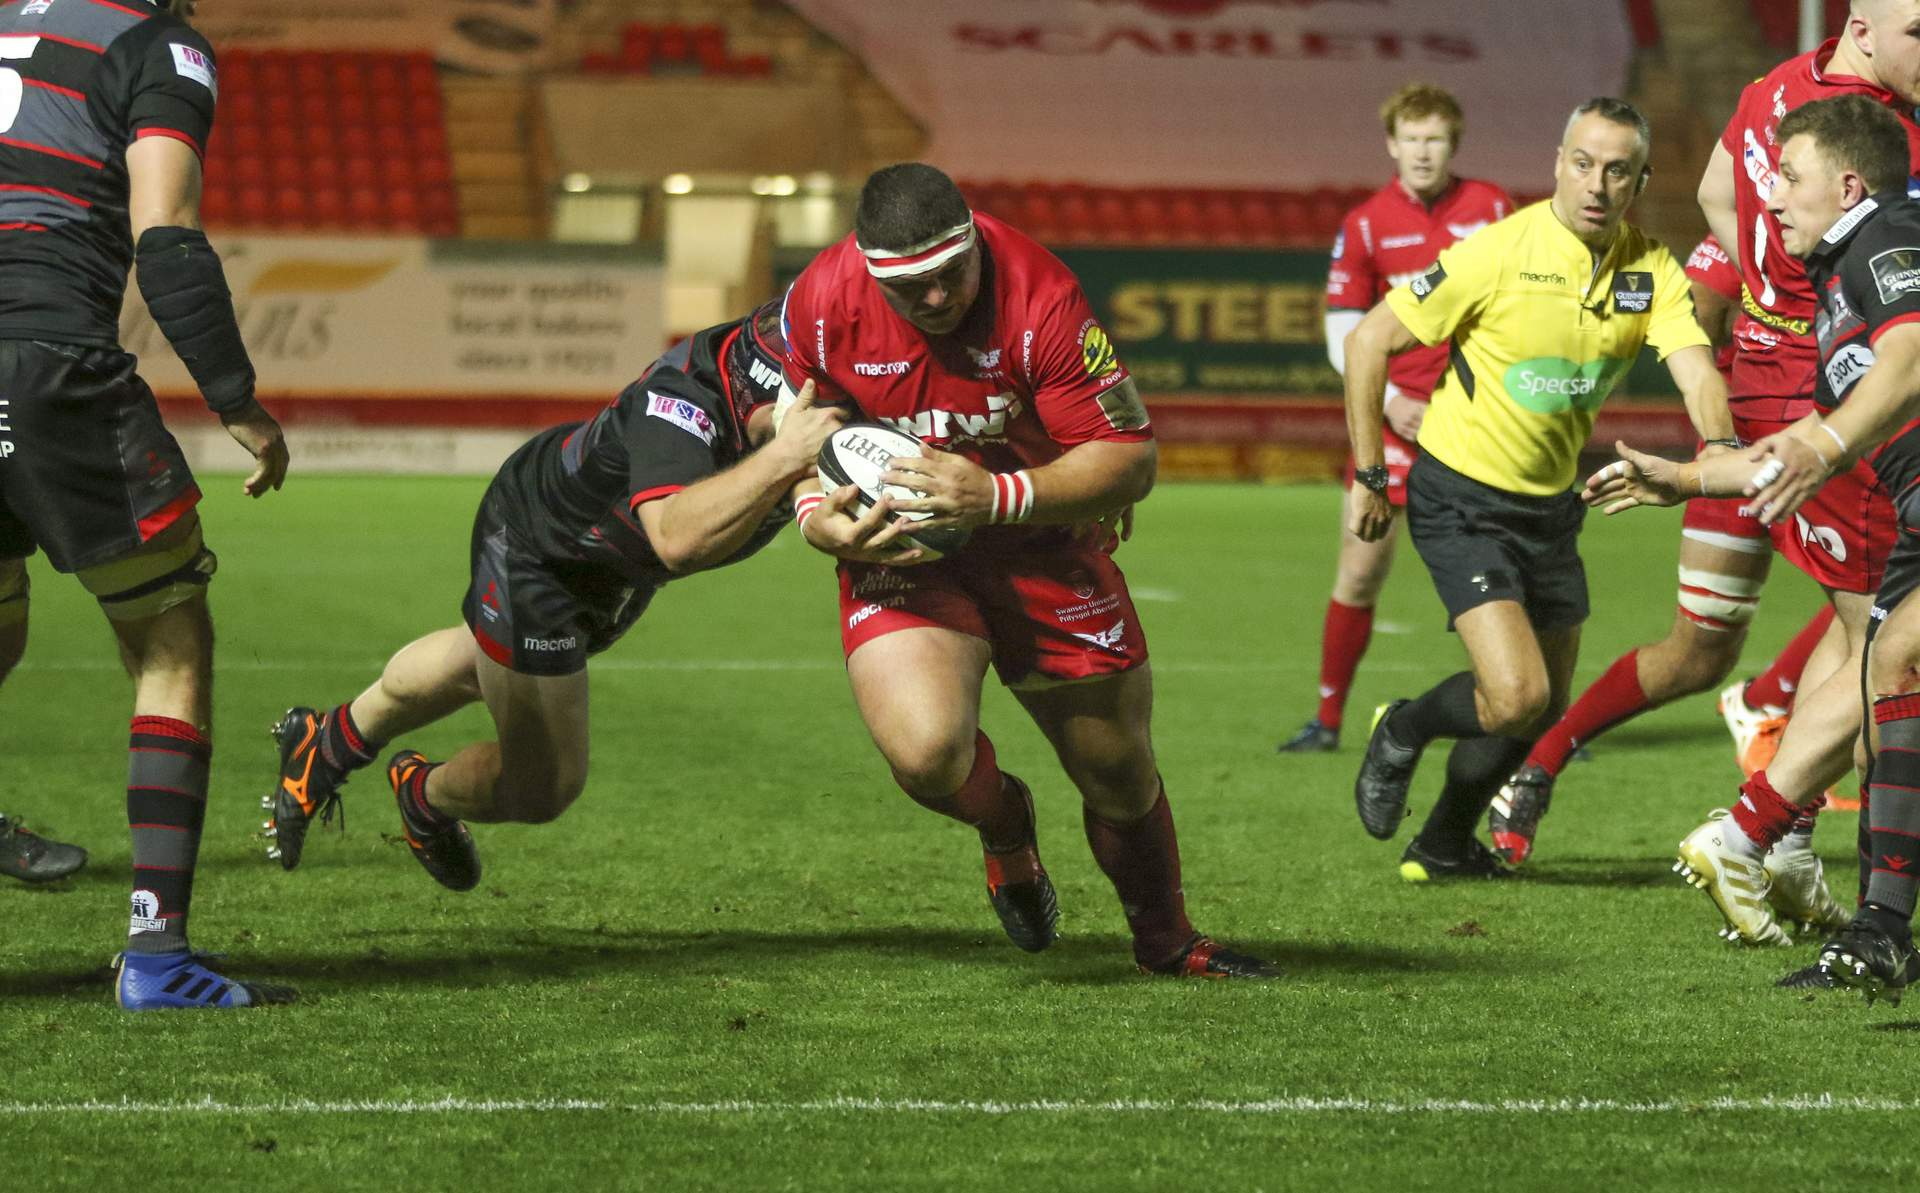 REPORT: Scarlets rack up another bonus-point win